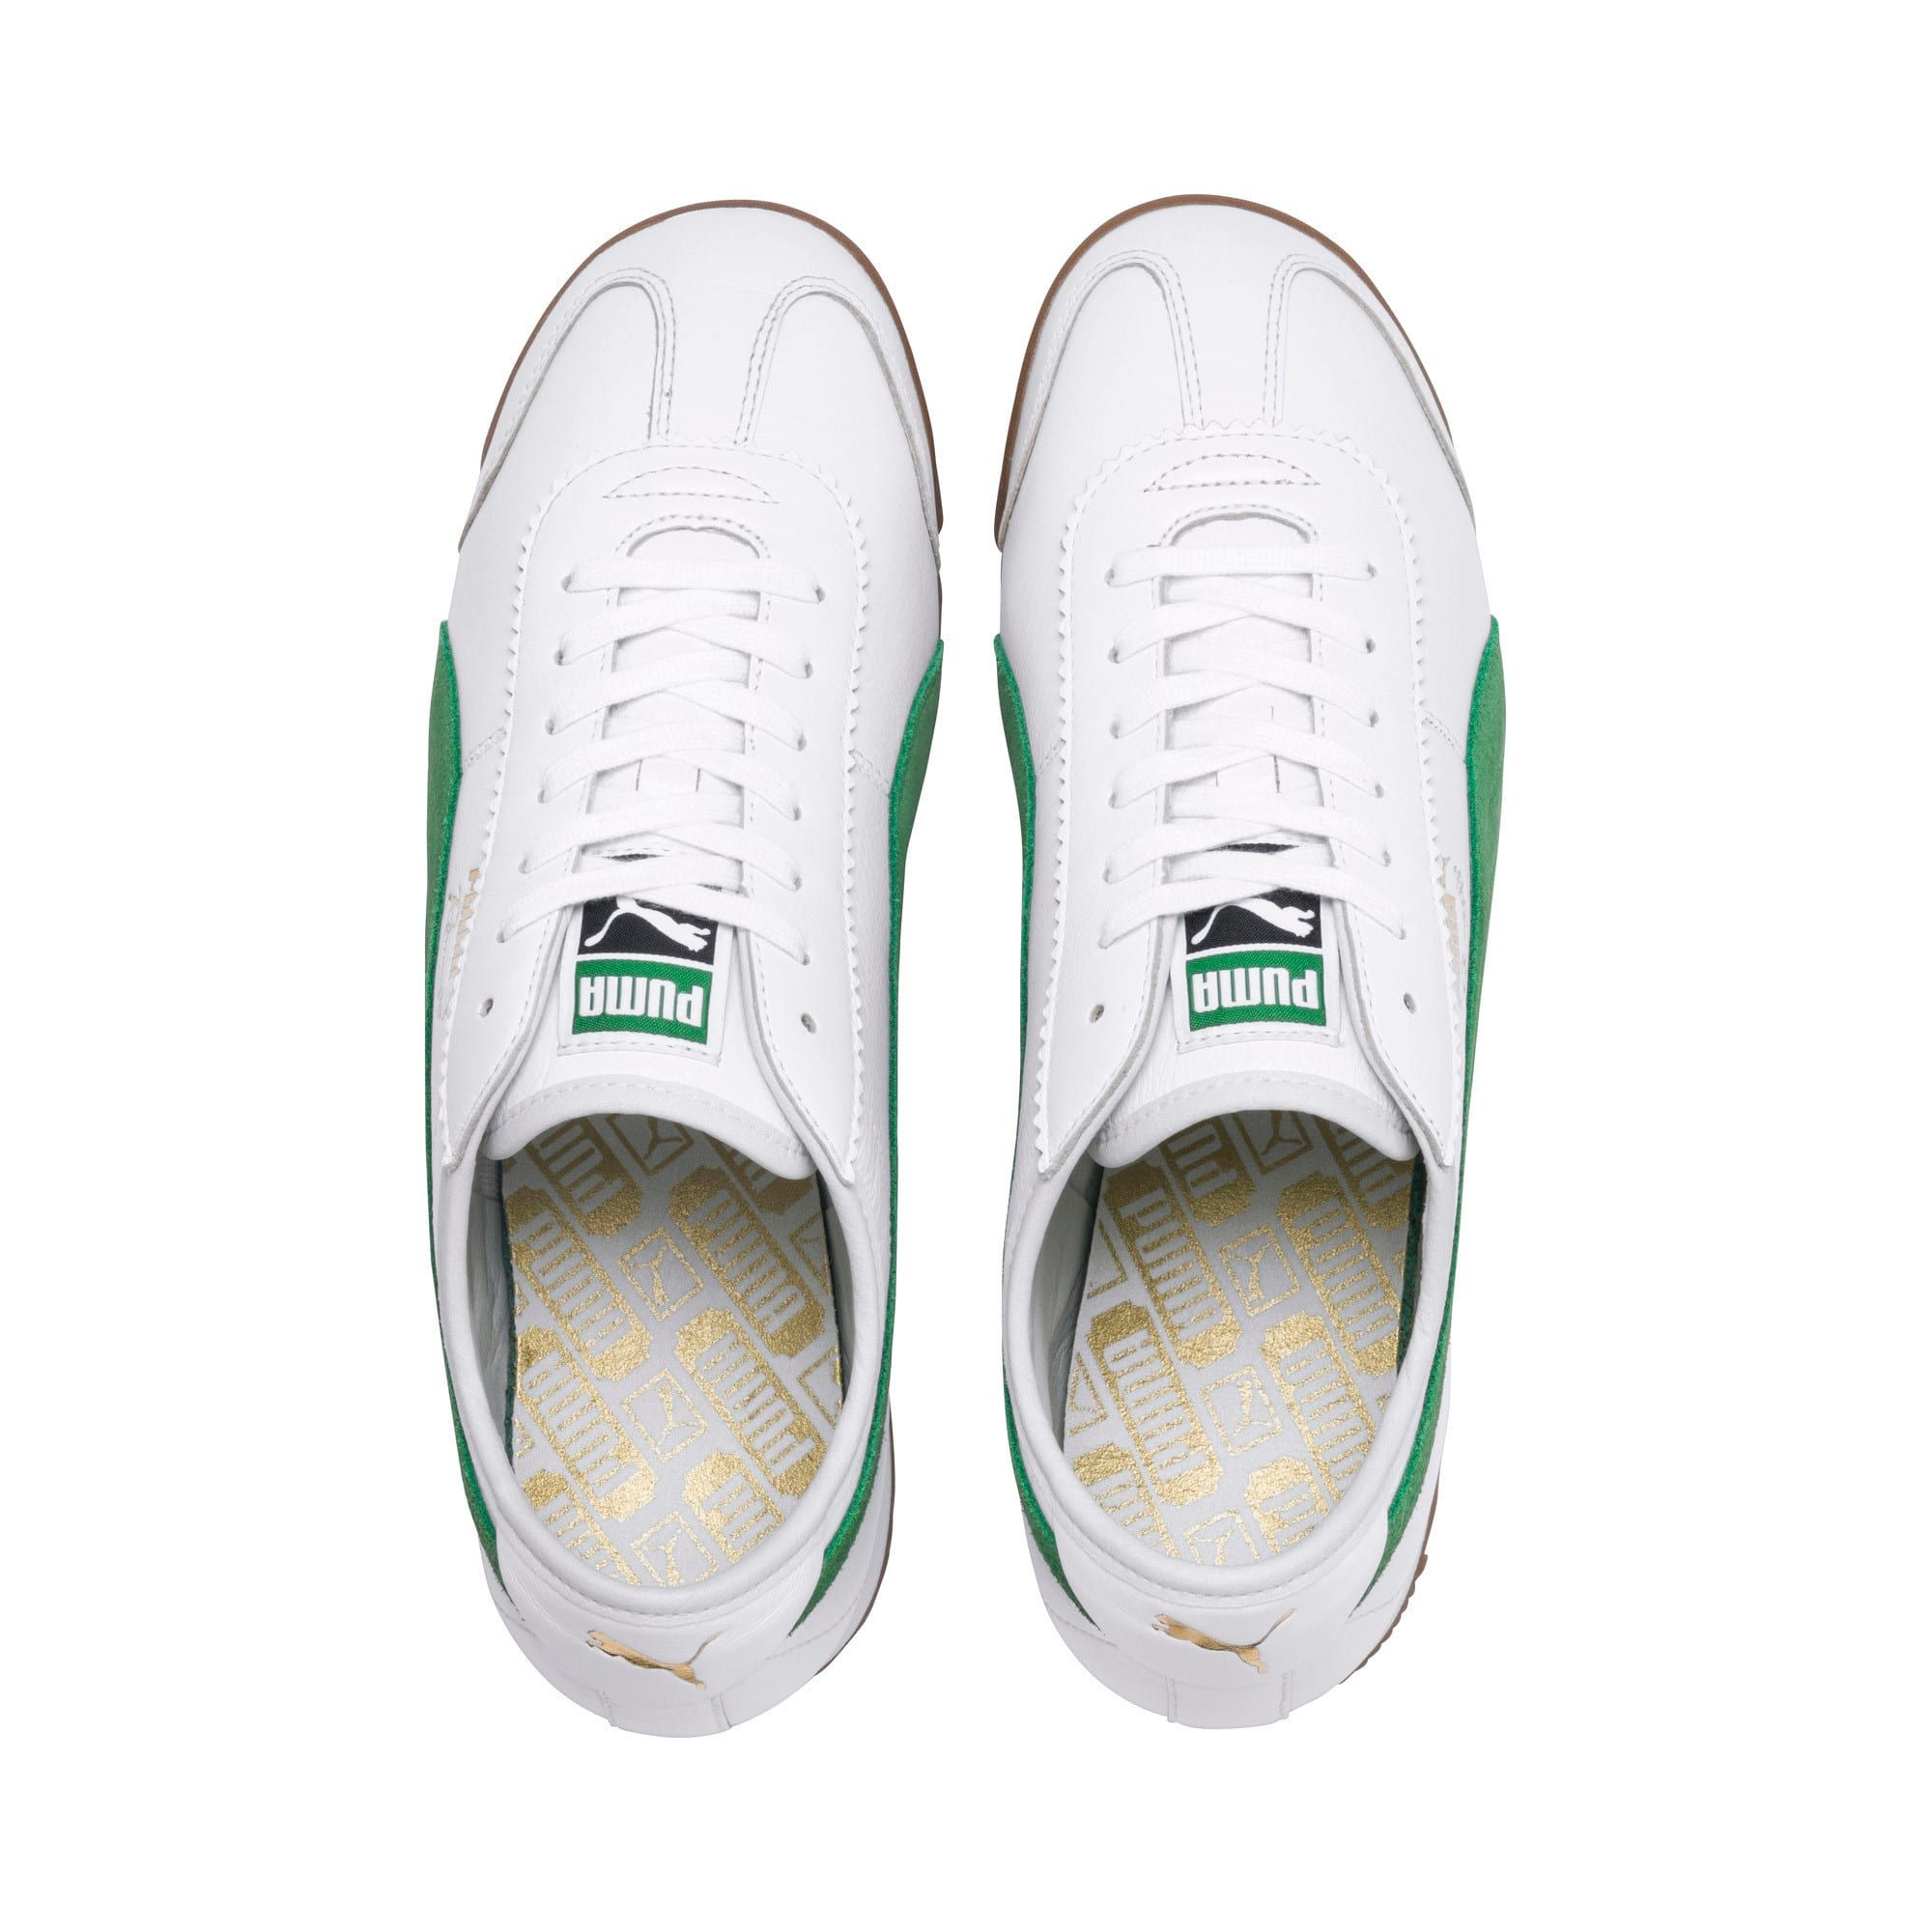 PUMA Chaussure Basket Roma '68 OG pour Homme, BlancVert